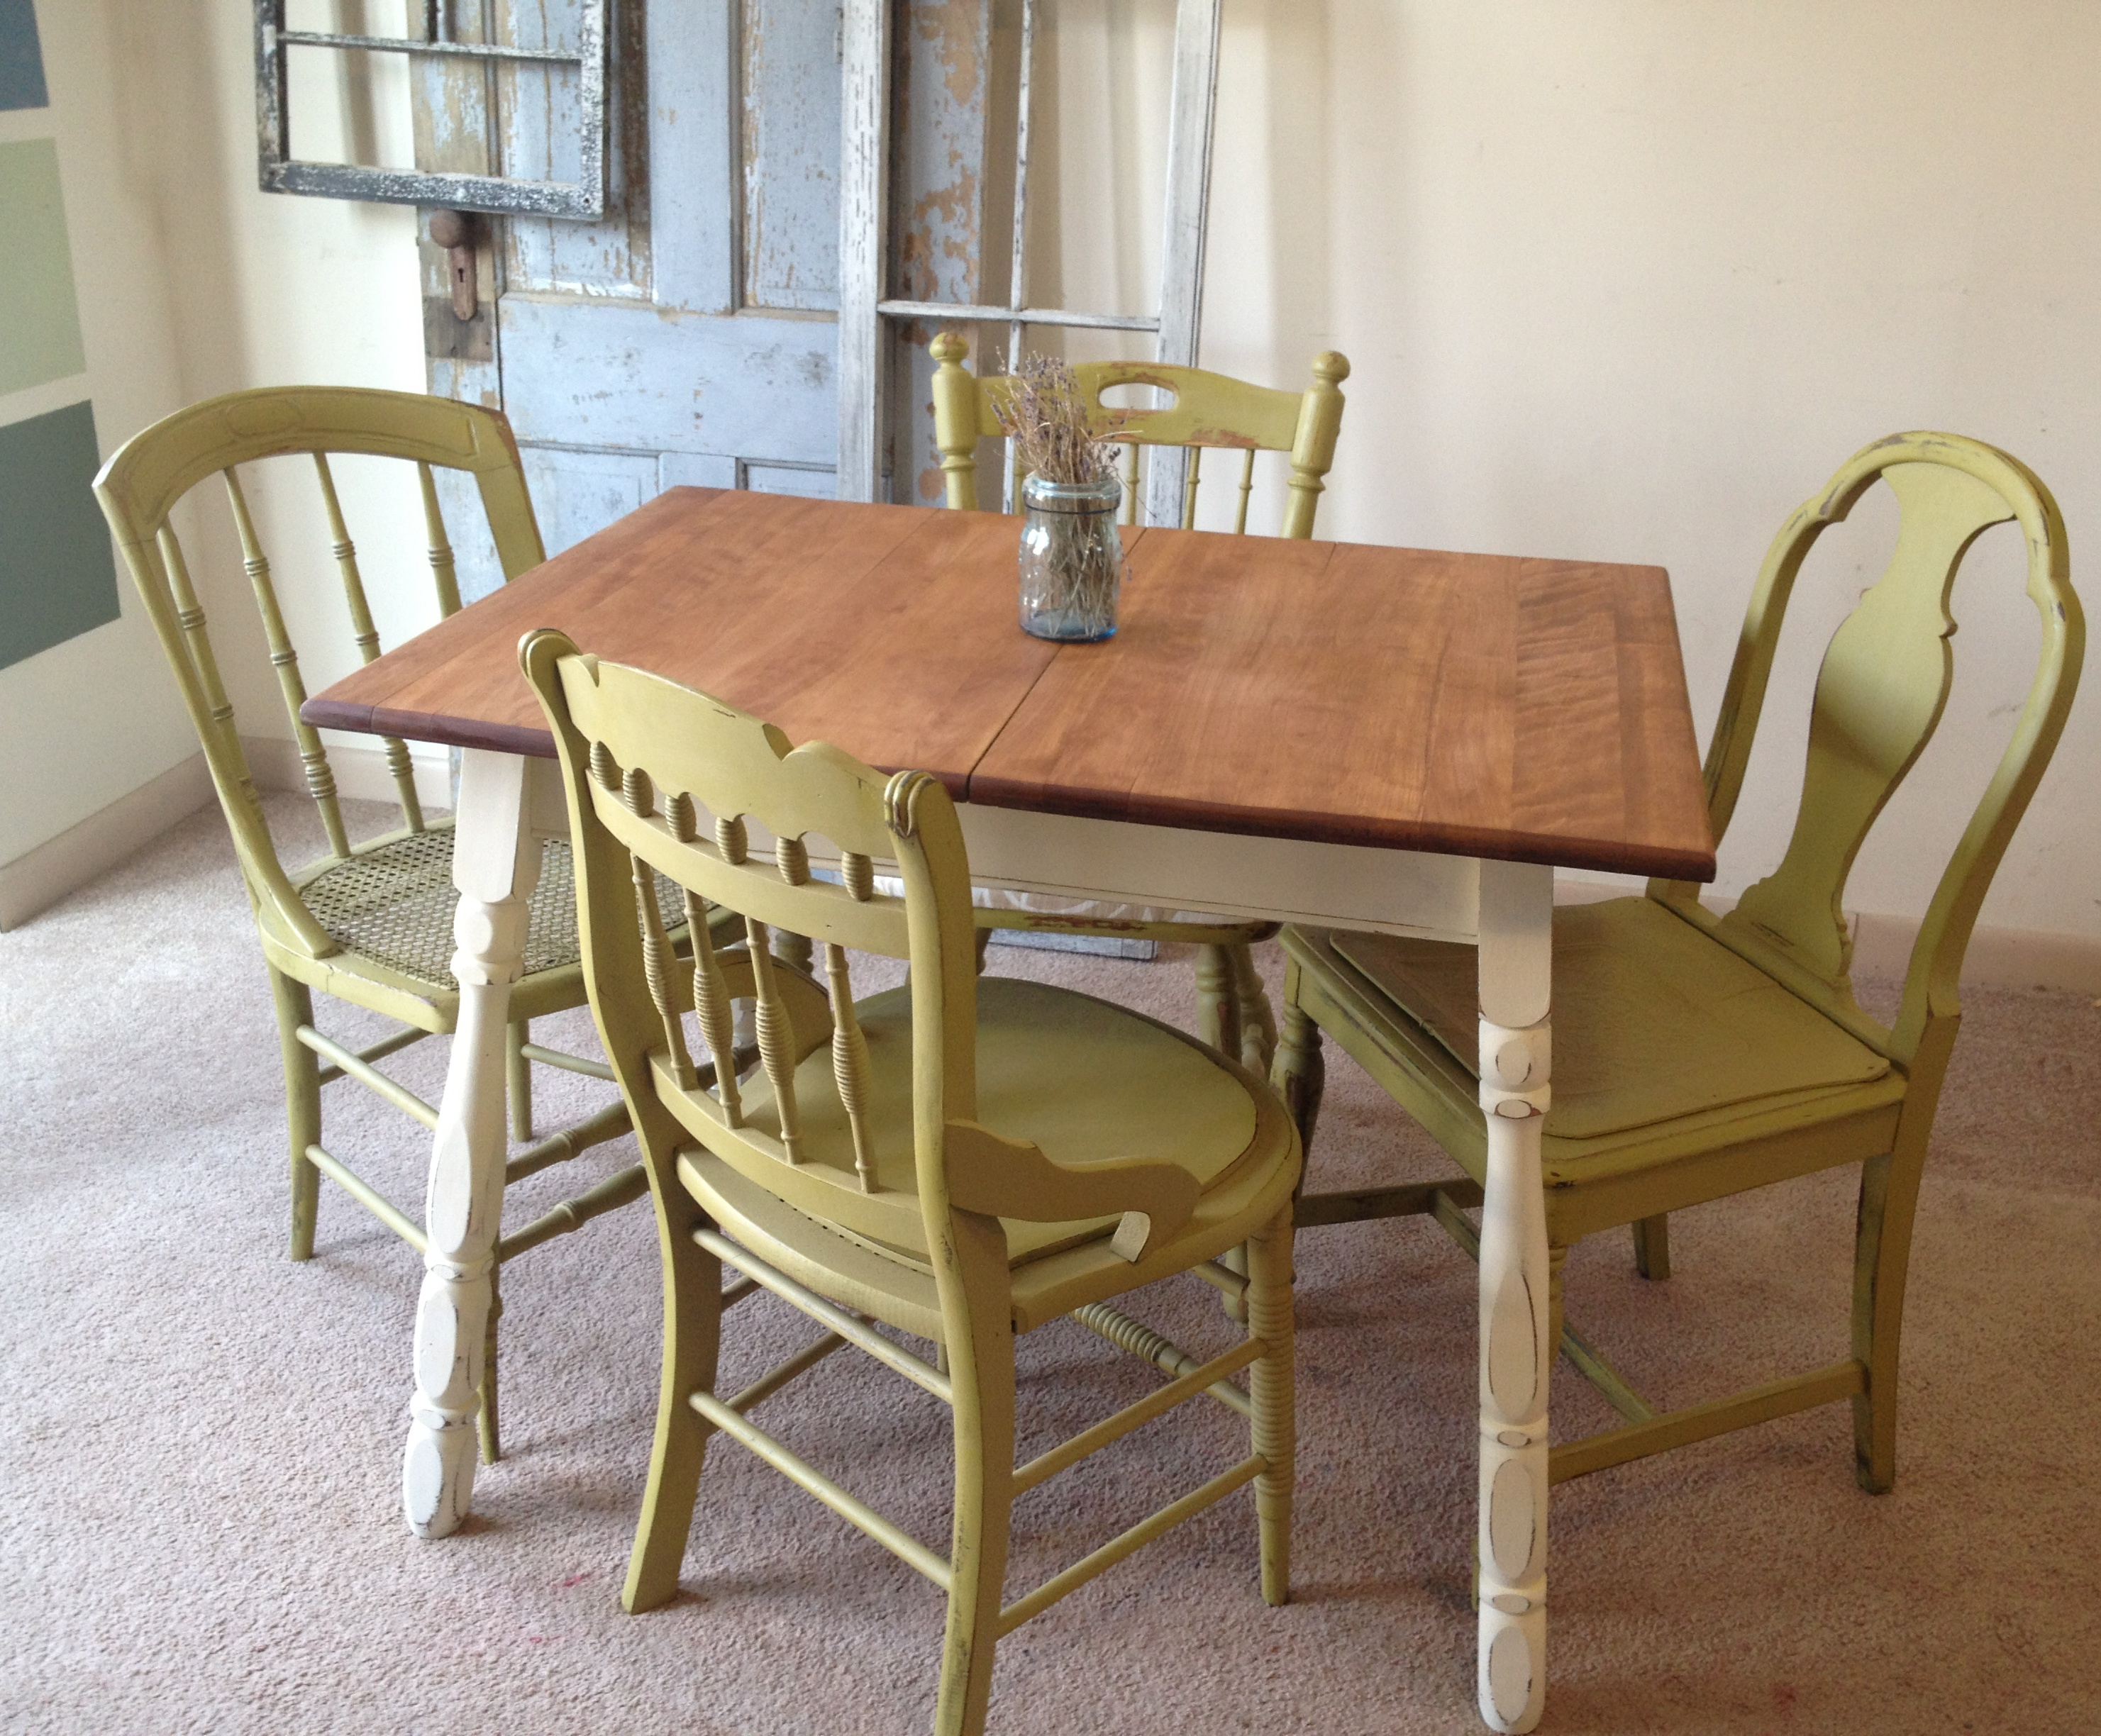 old kitchen table and chairs photo - 1